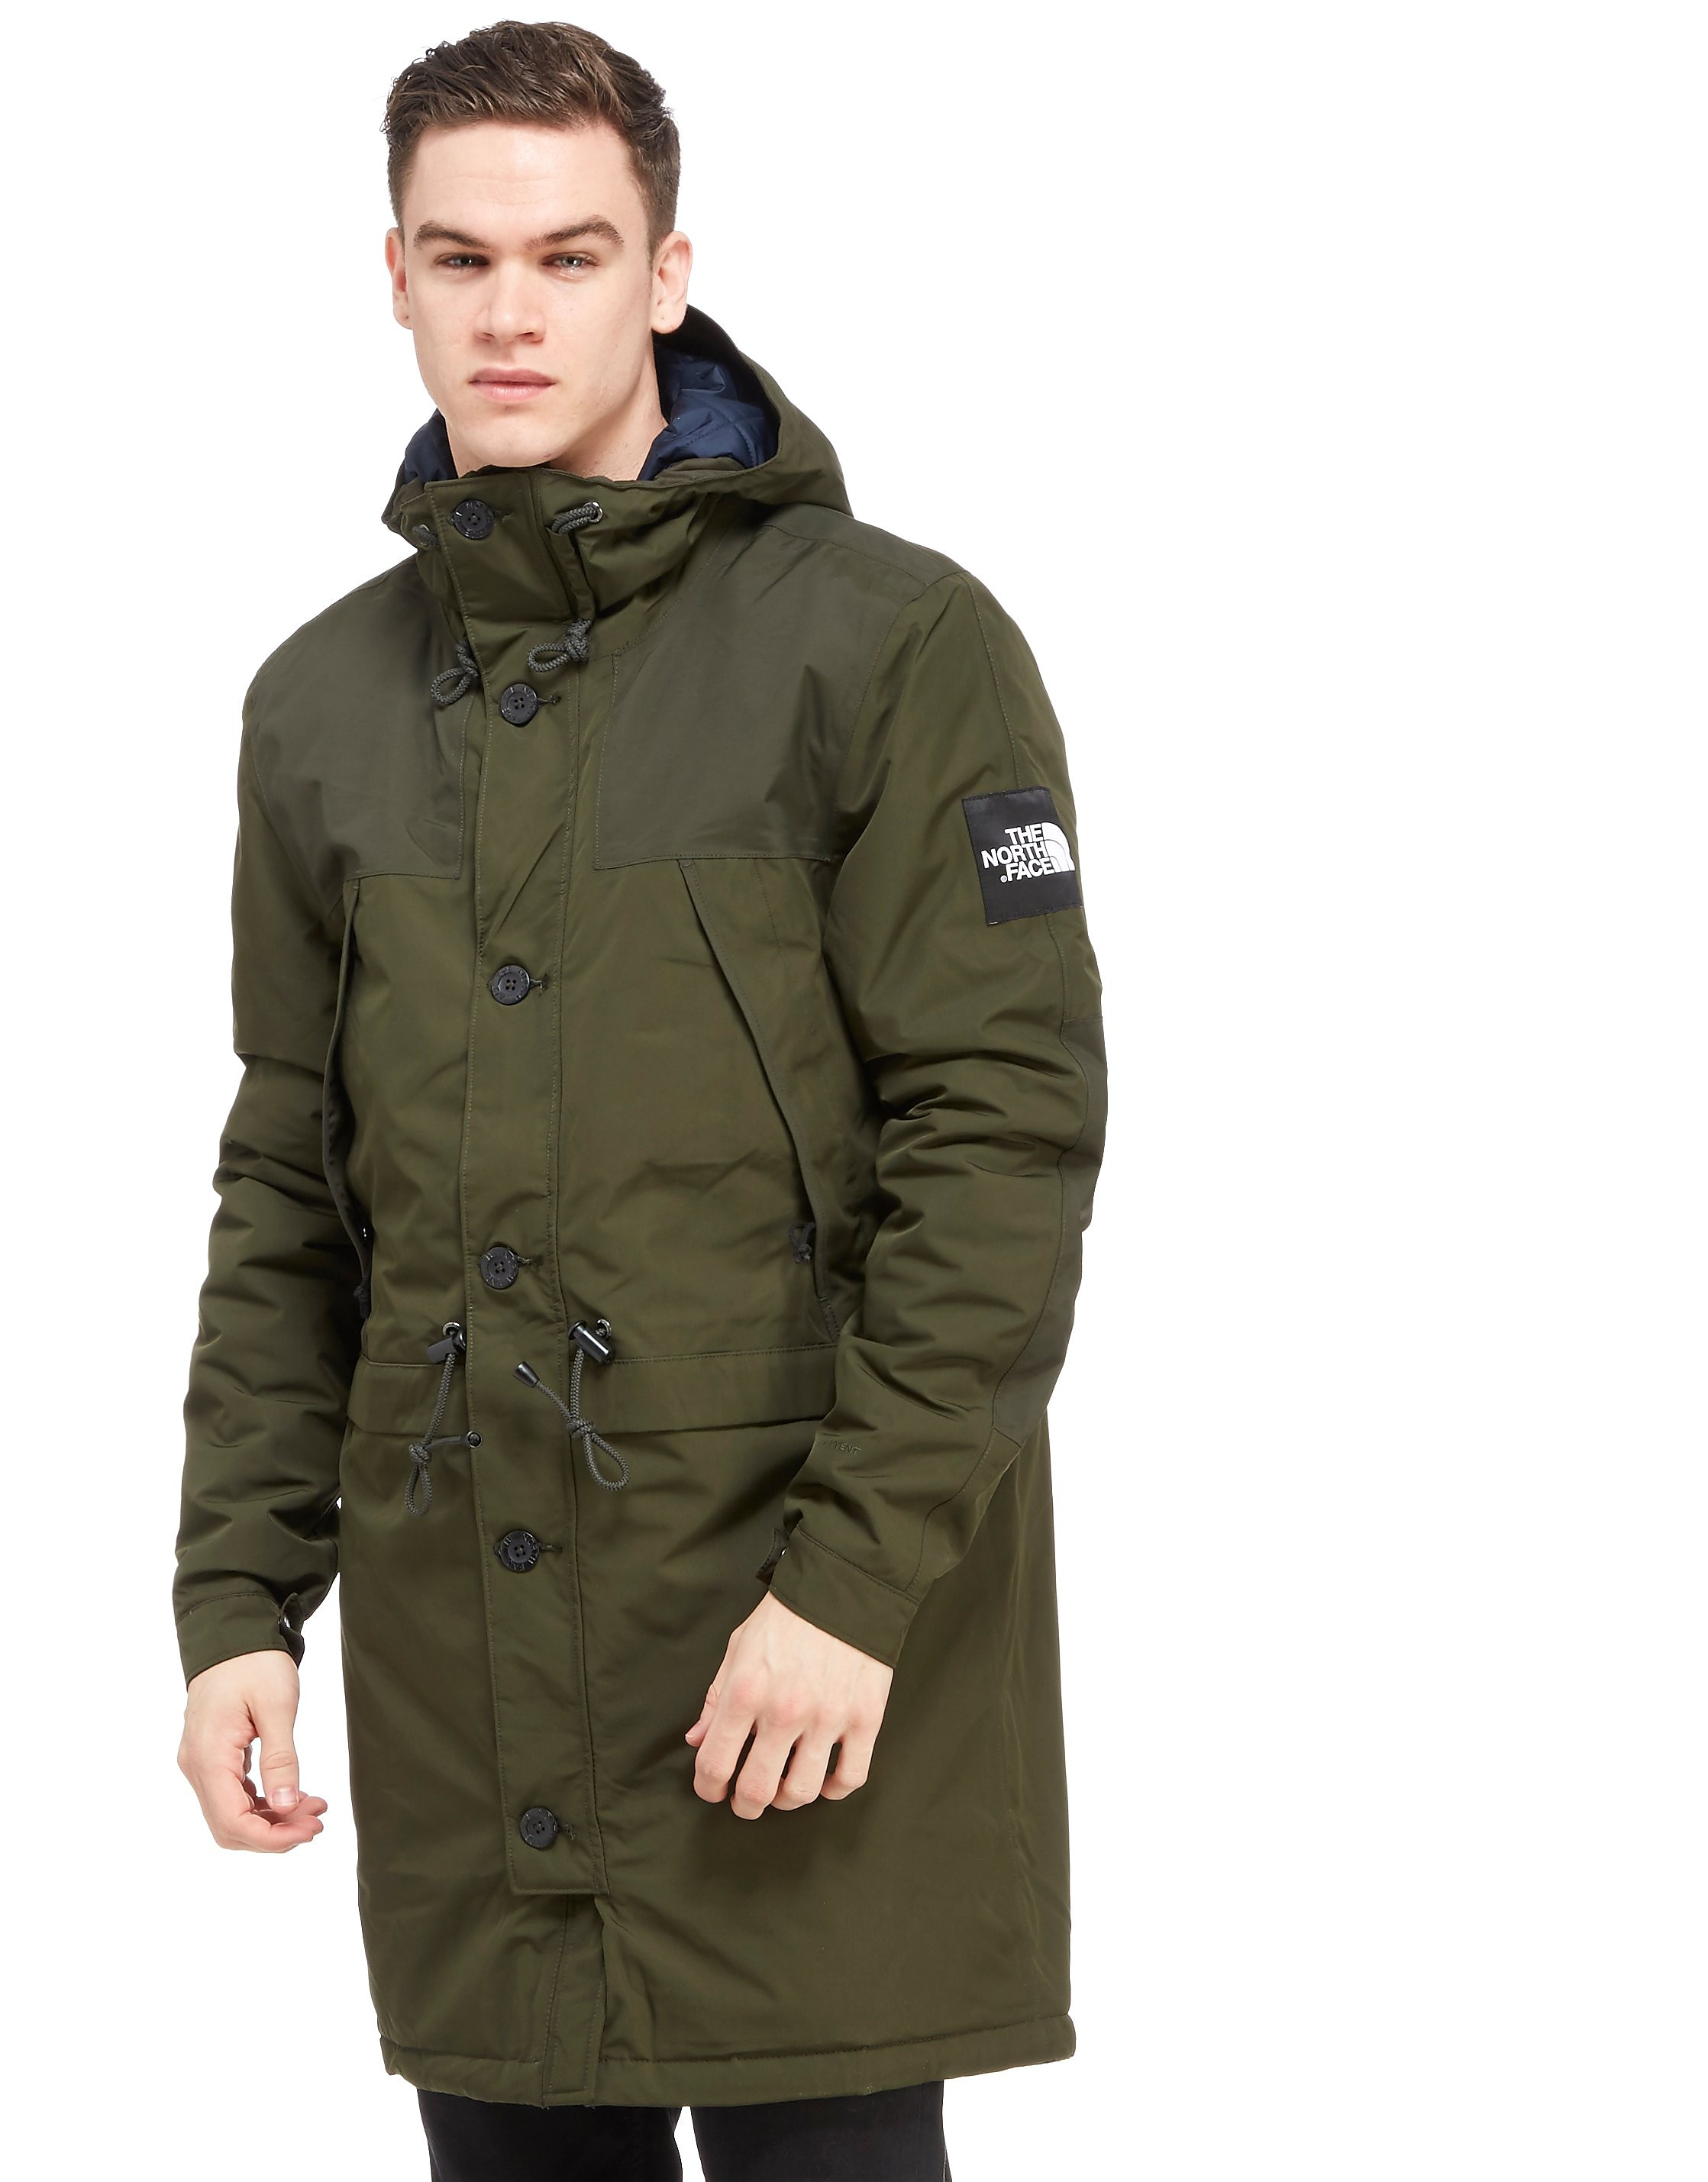 The North Face Mountain Parka Jacket